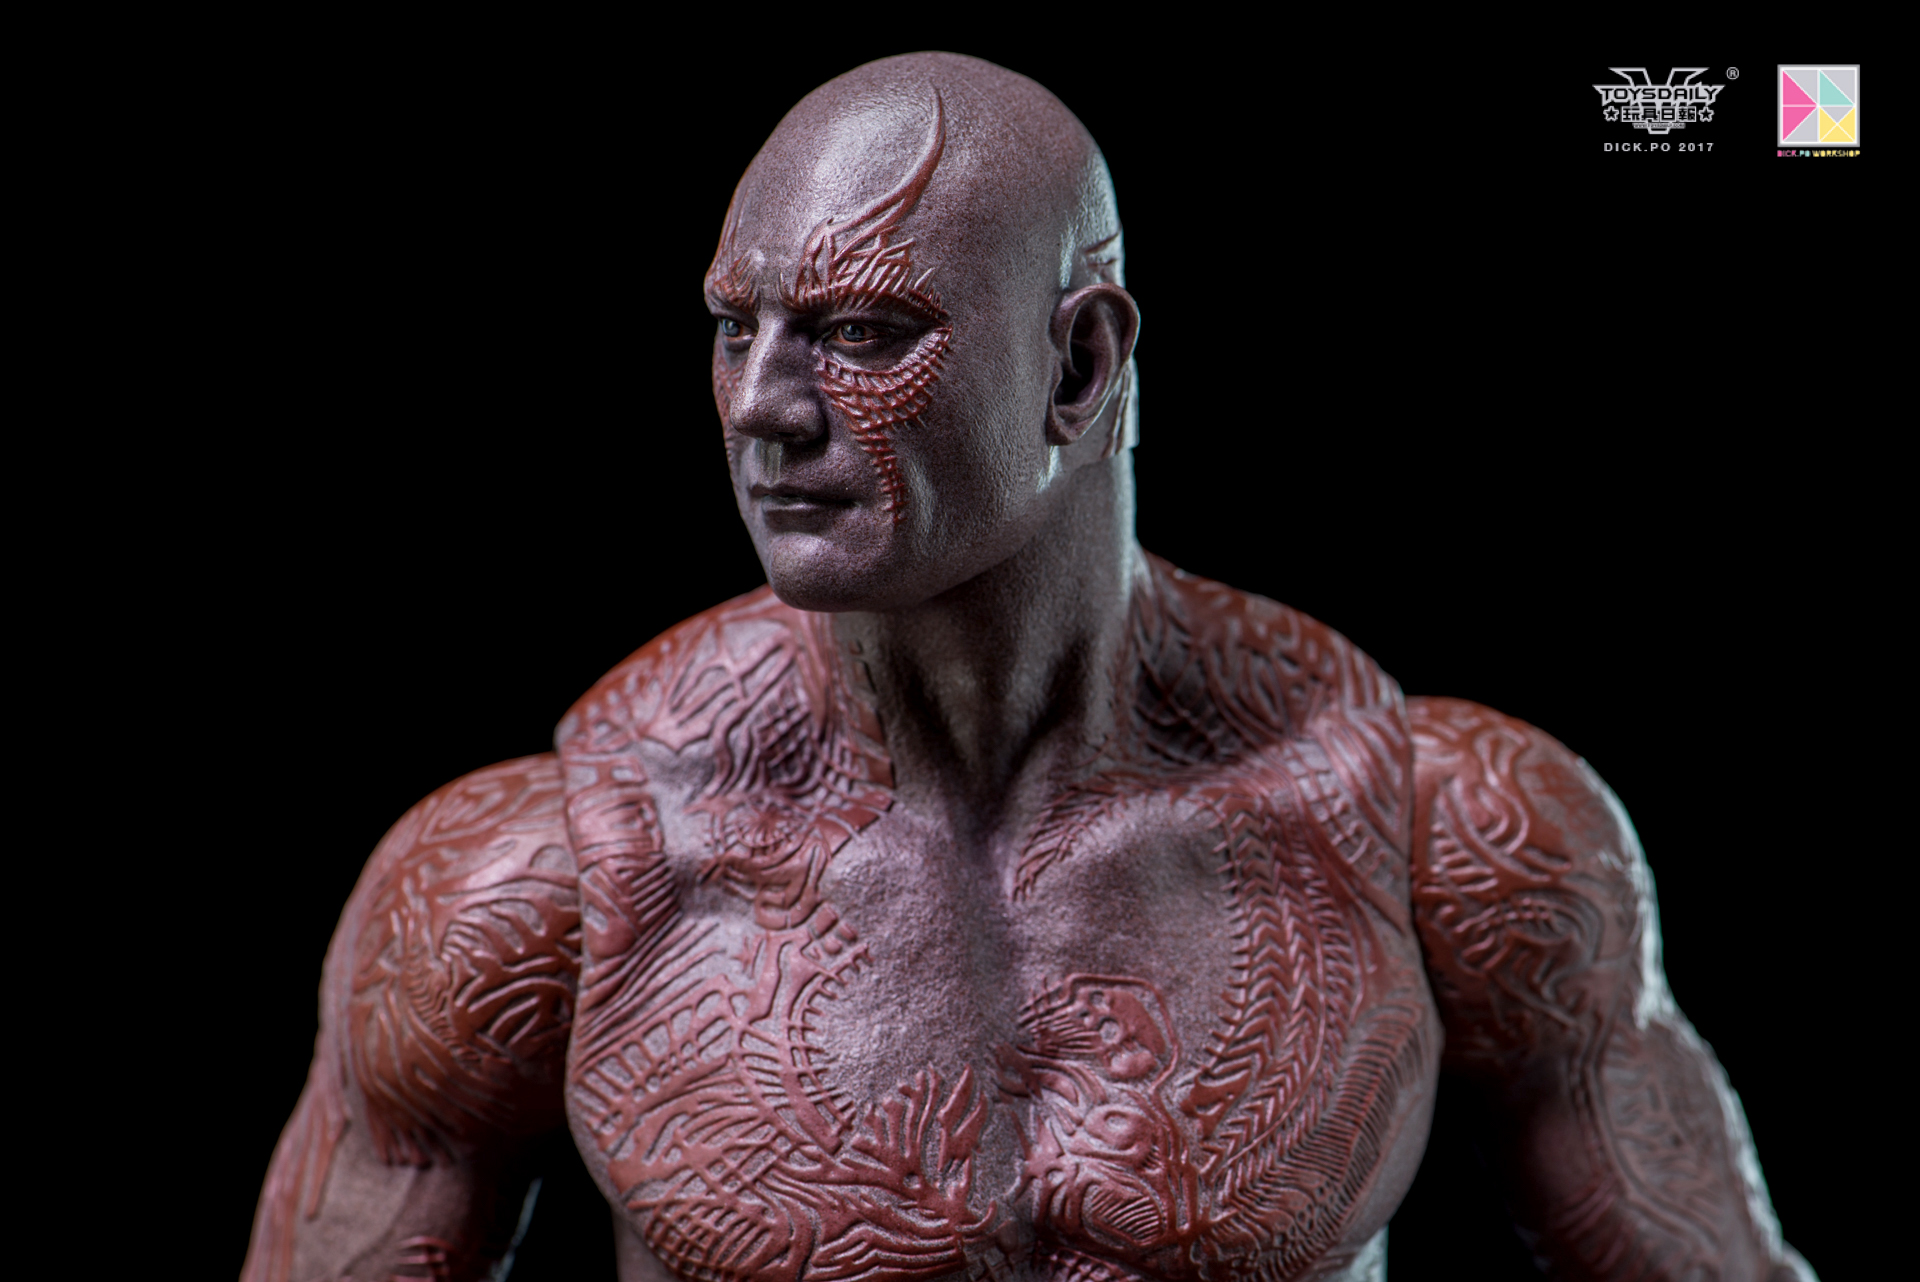 toysdaily_dick.po_Hottoys_DARX-25.jpg